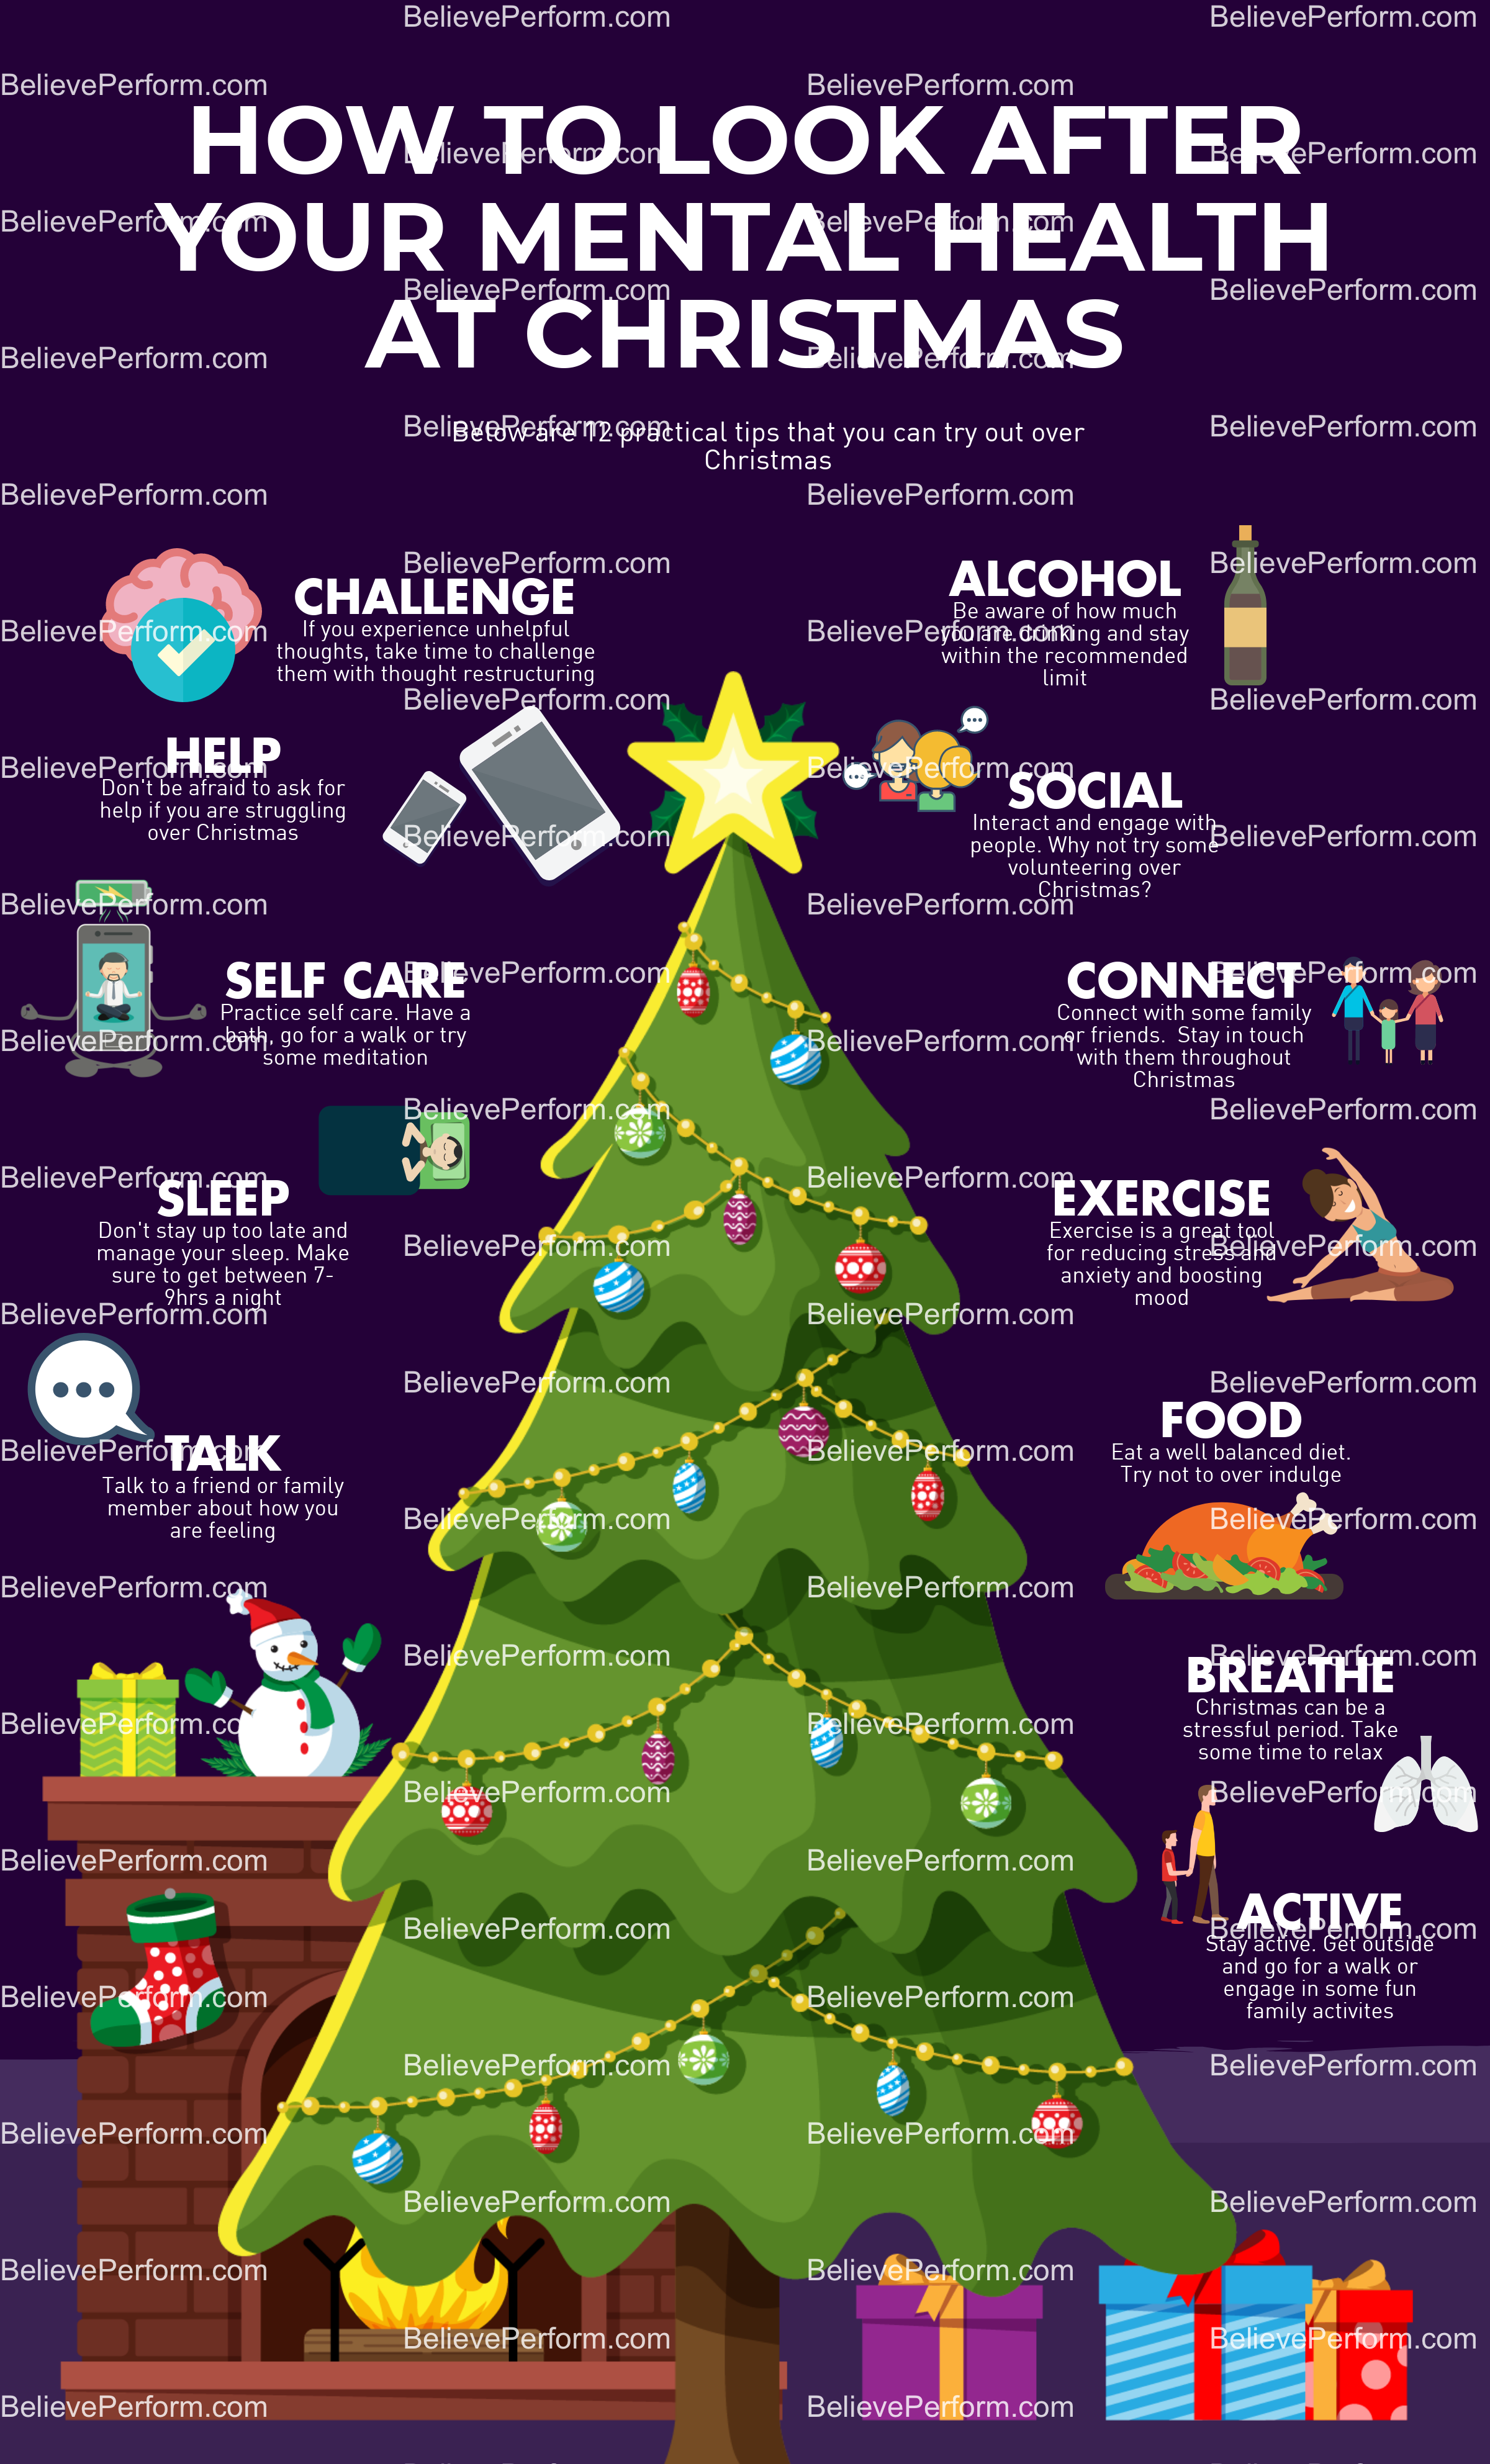 How to look after your mental health at Christmas ...